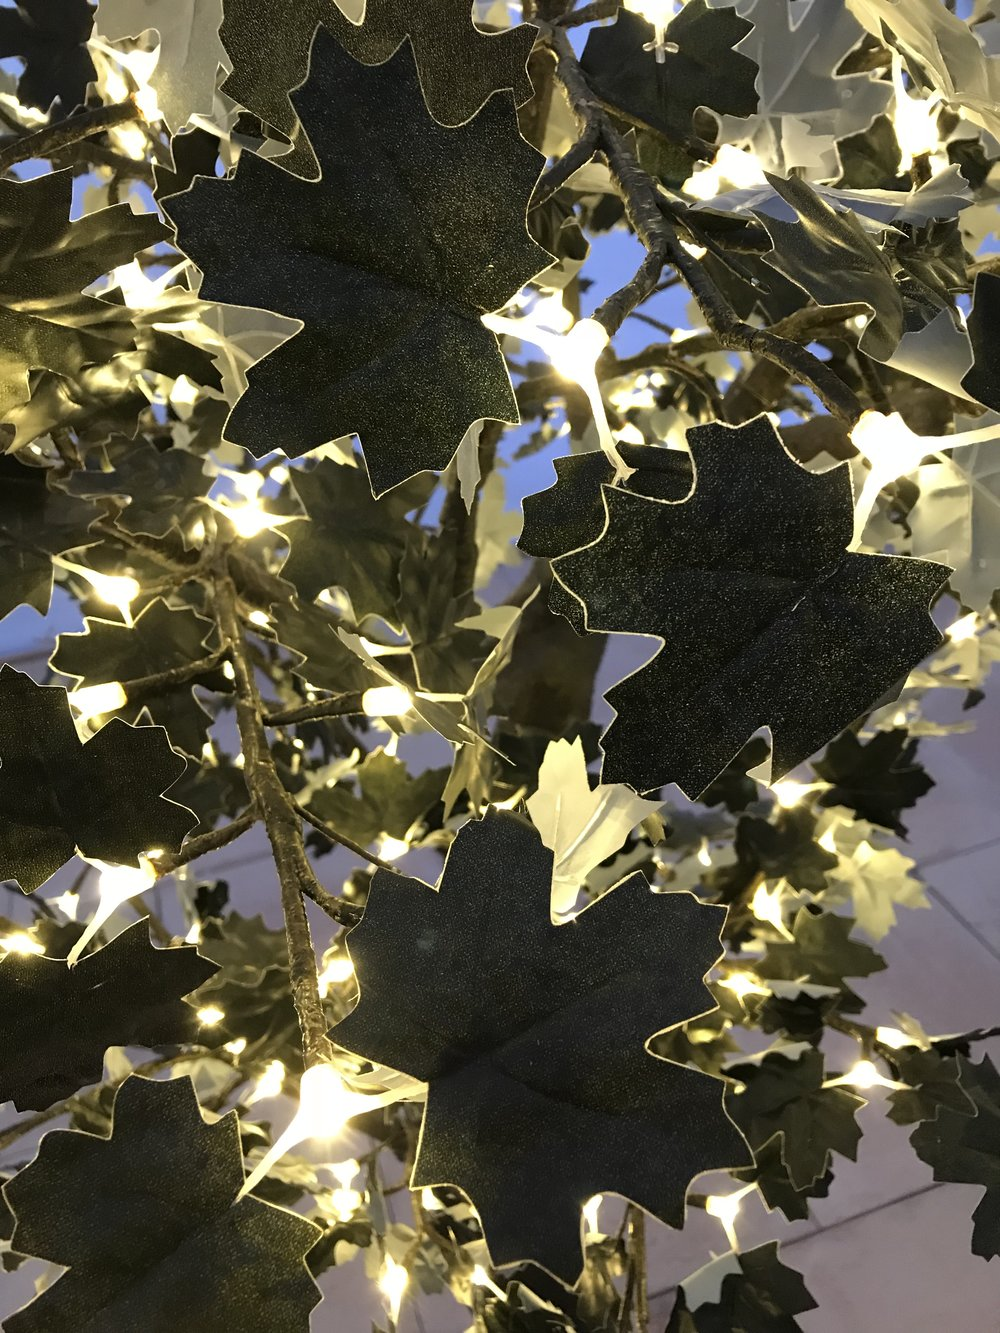 Adding warmth and sophistication to any setting the Black Maple Light Tree is perfect for black tie events. Its chic color combination also makes it a firm favorite as a permanent installation in hotels and venues.